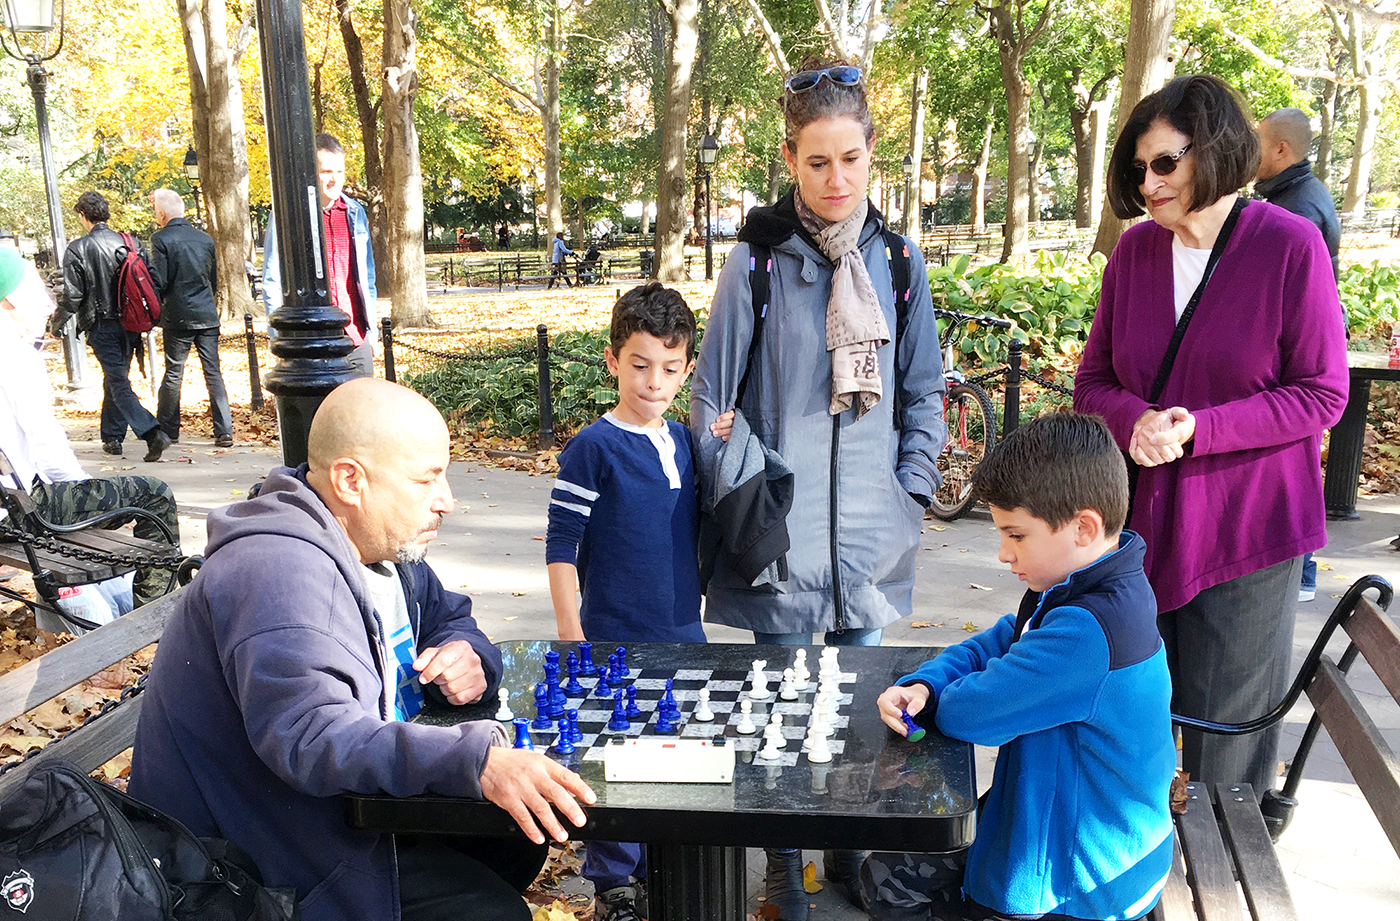 A Day of Chess in NYC's West Village: Where to Go and What to Do